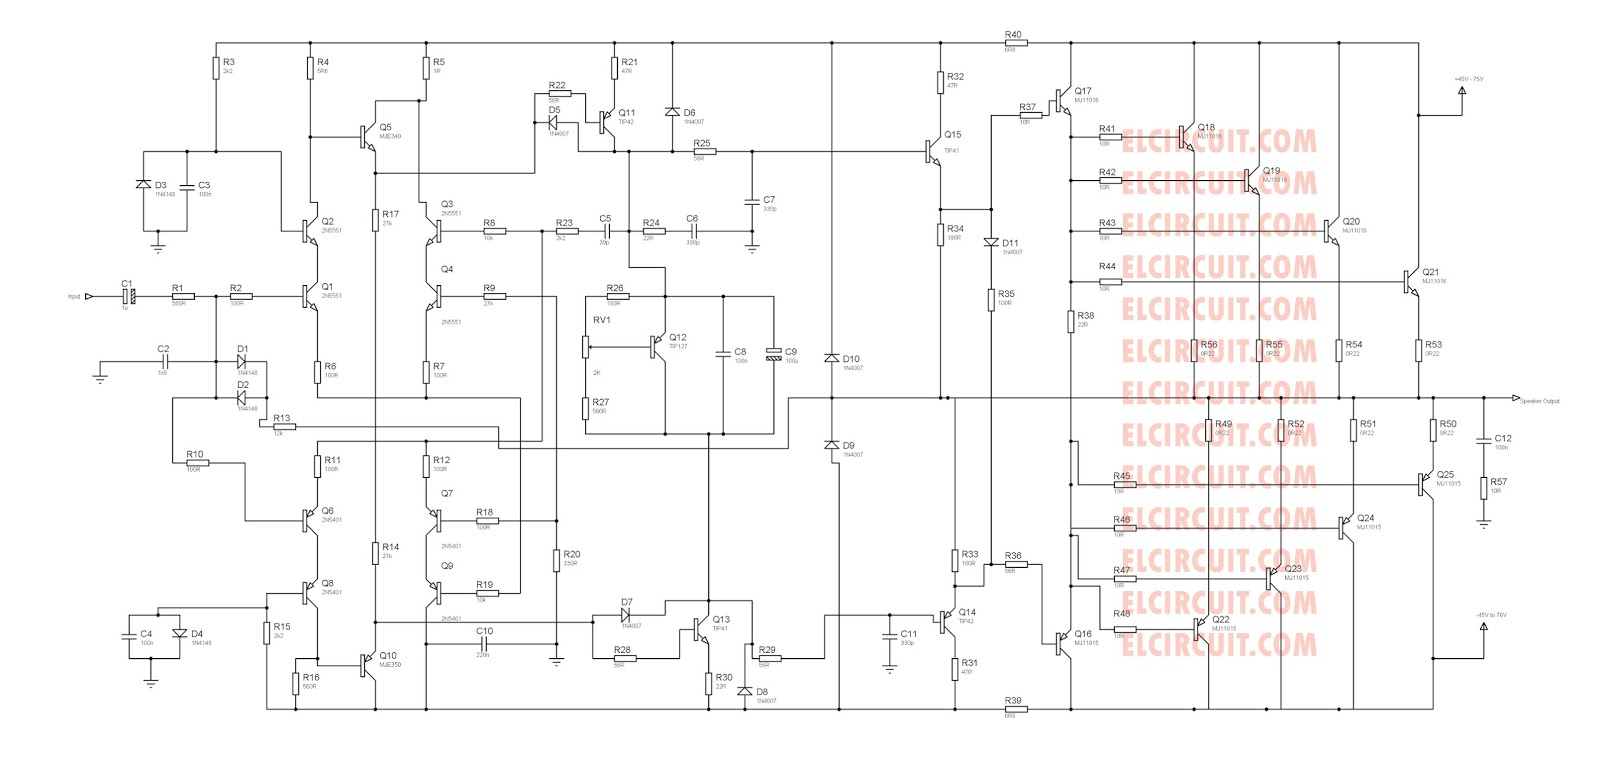 small resolution of 2500w power amp cct diagrams wiring library 2500w power amp cct diagrams